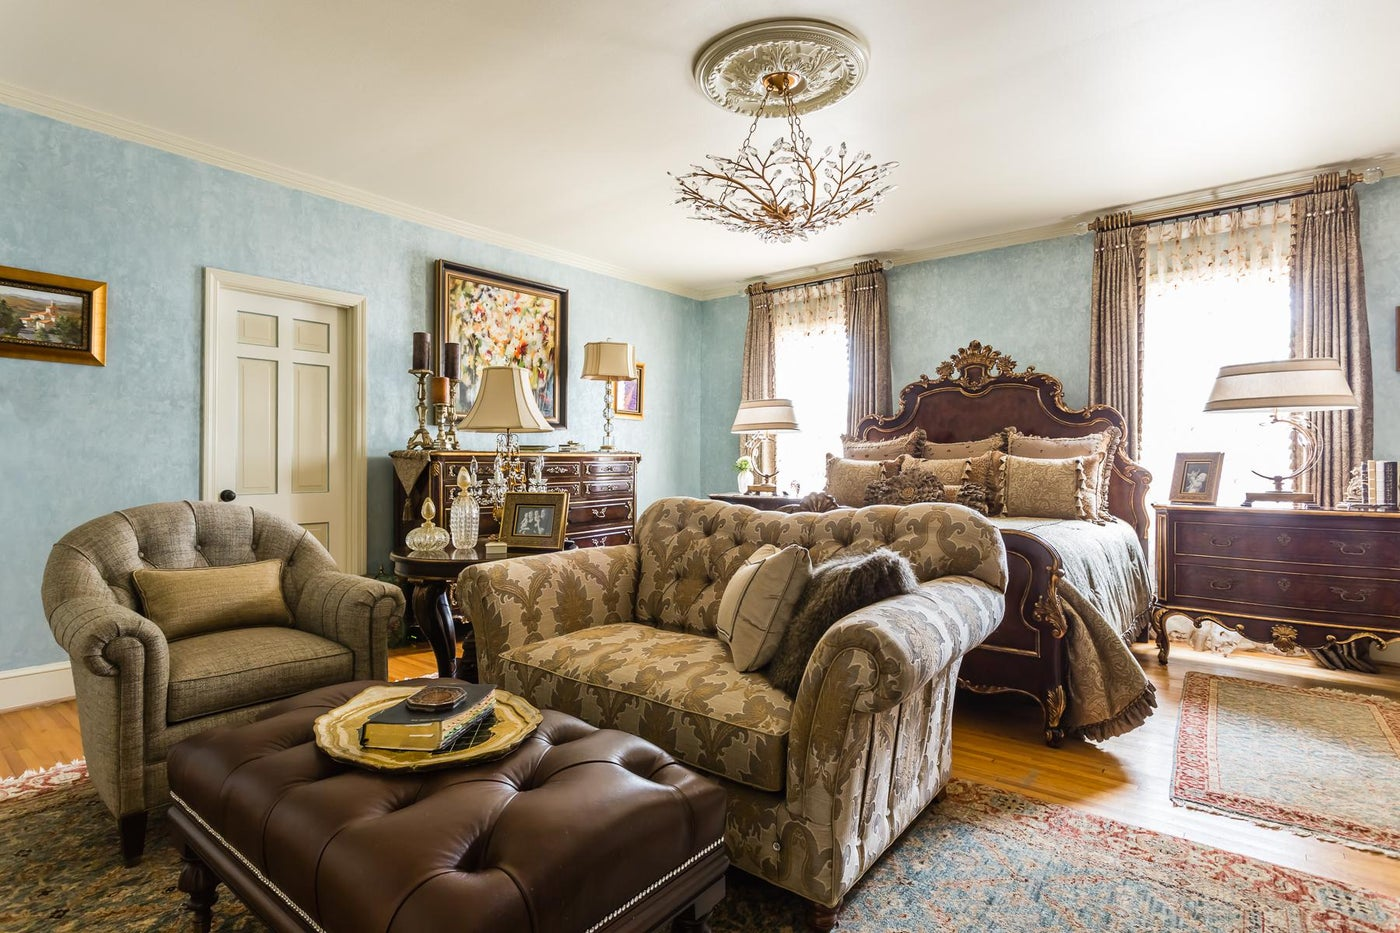 Expansive master bedroom with gilded furniture, tufted seating and crystal lamps